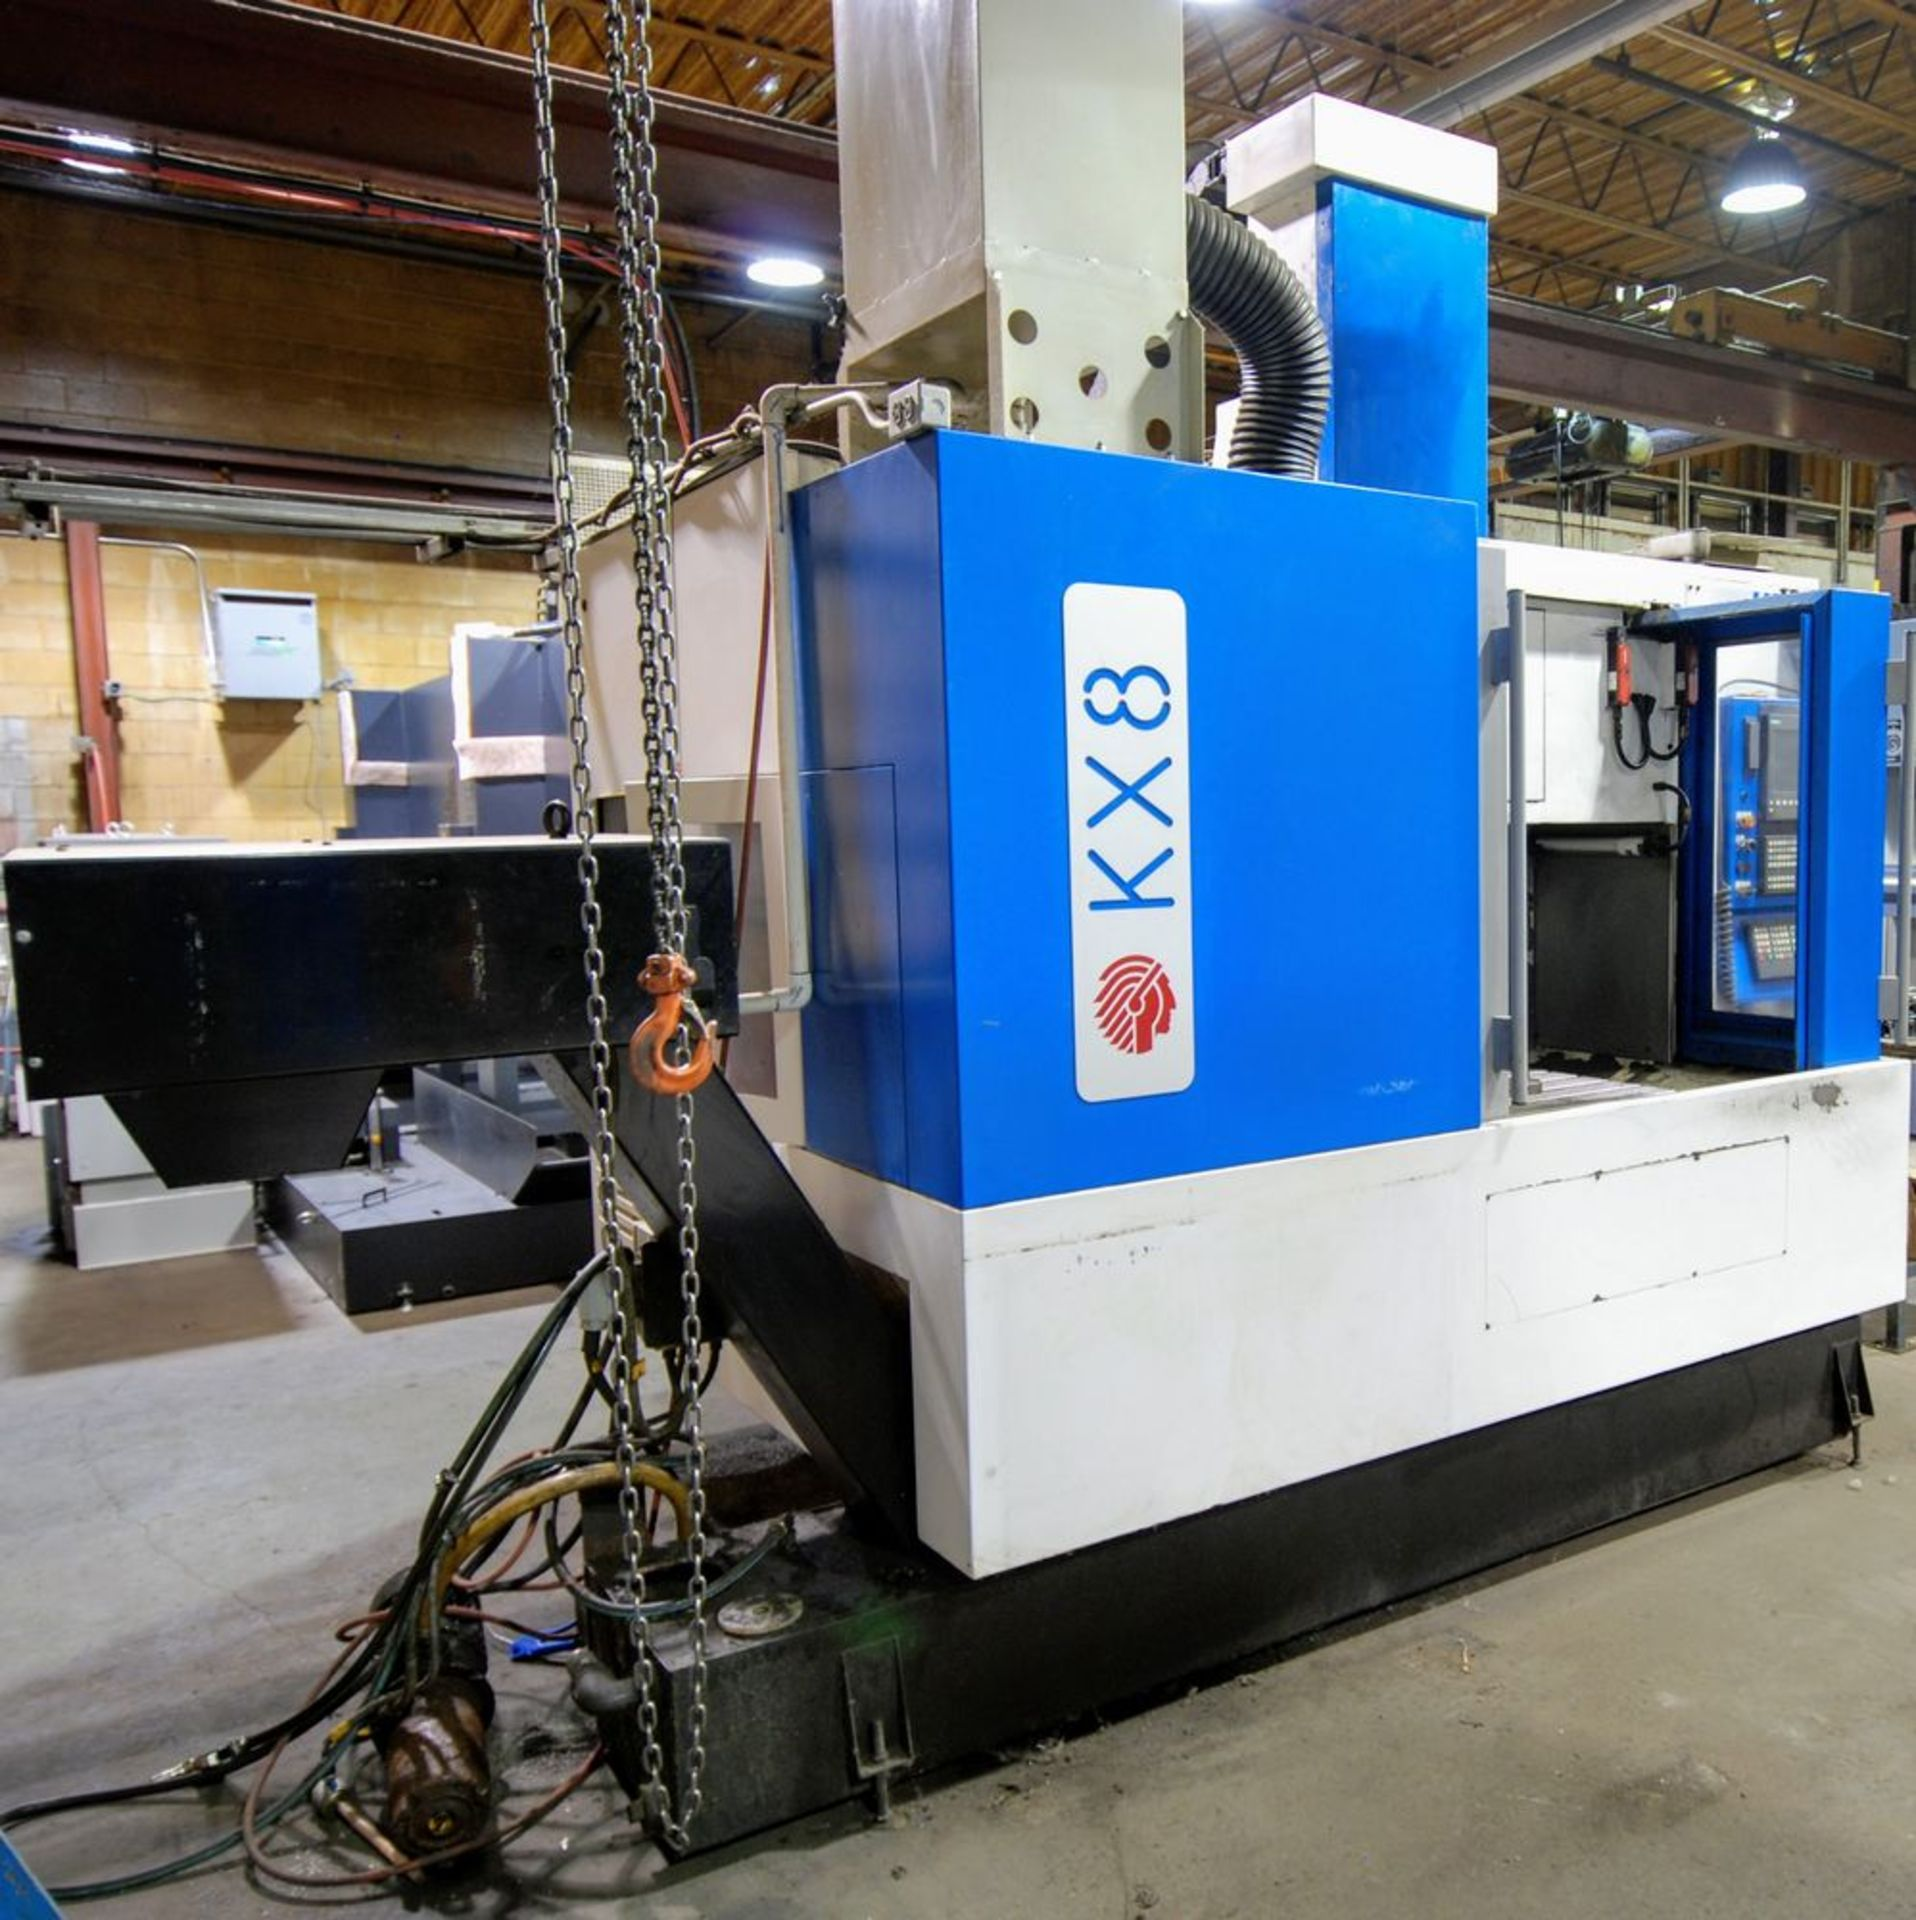 "Lot 18 - 2002 HURON KX8 CNC Vertical Machining Center, s/n B01262, 24"" x 32"" Table, Siemens CNC Control,"